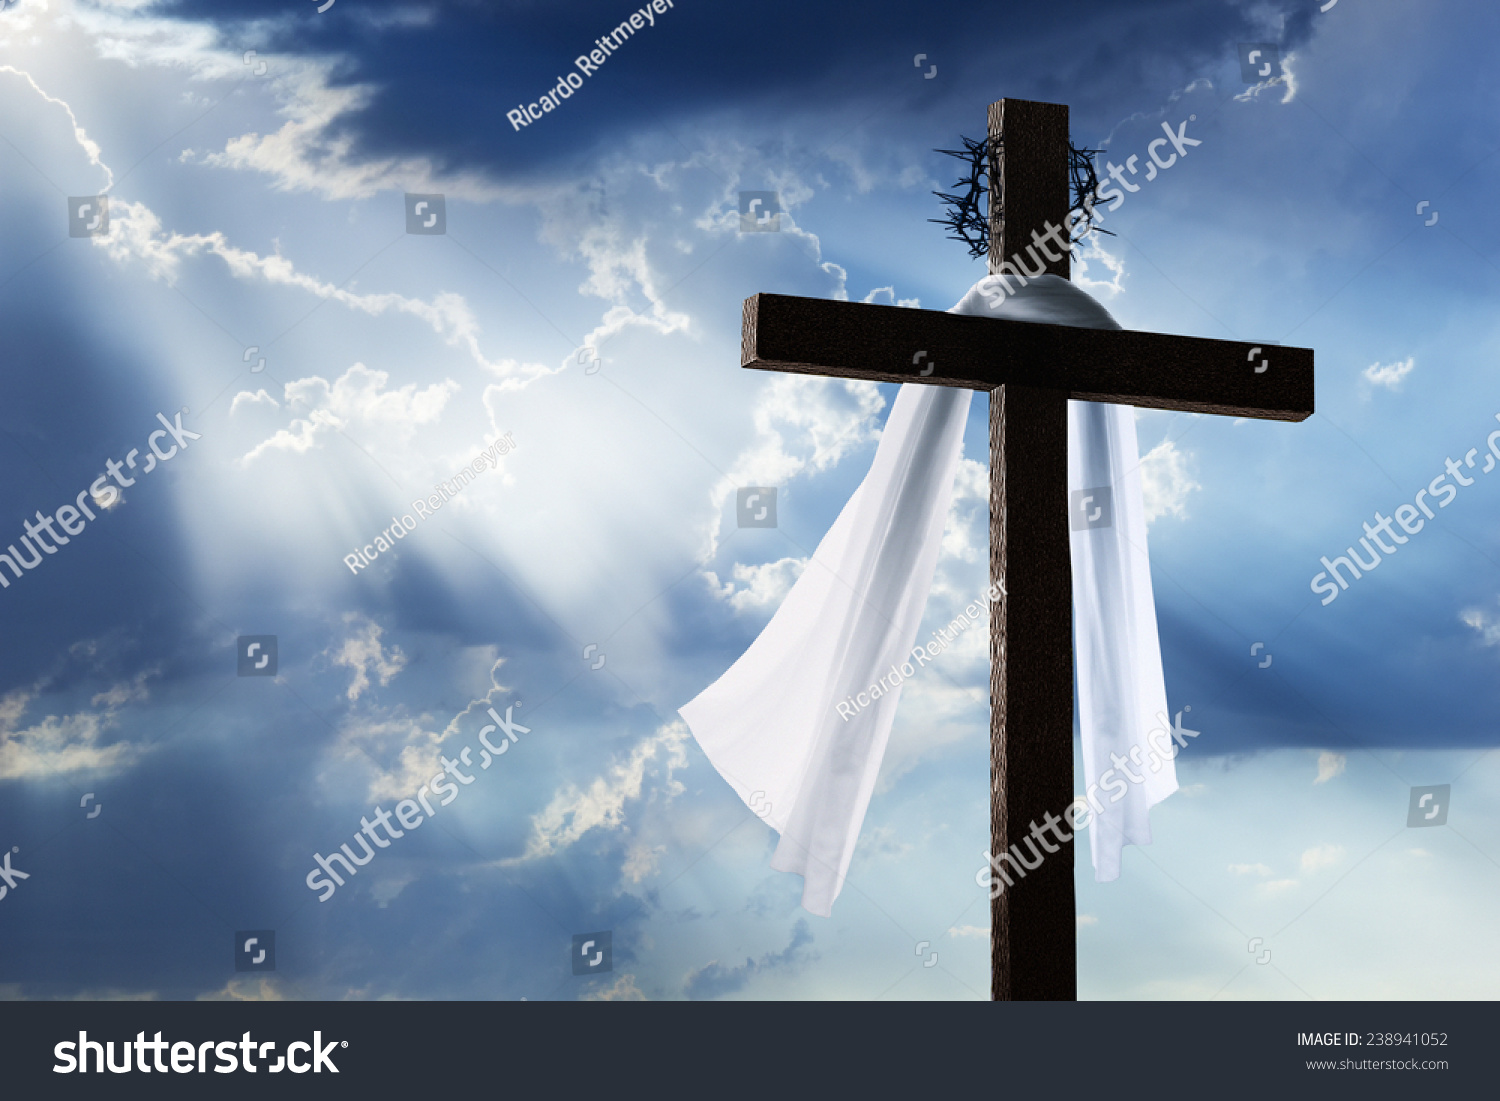 Silhouette of the holy cross on background of storm clouds stock - Beautiful Blue Sky With Clouds And Sunbeams Shining On A Cross For Easter Morning The